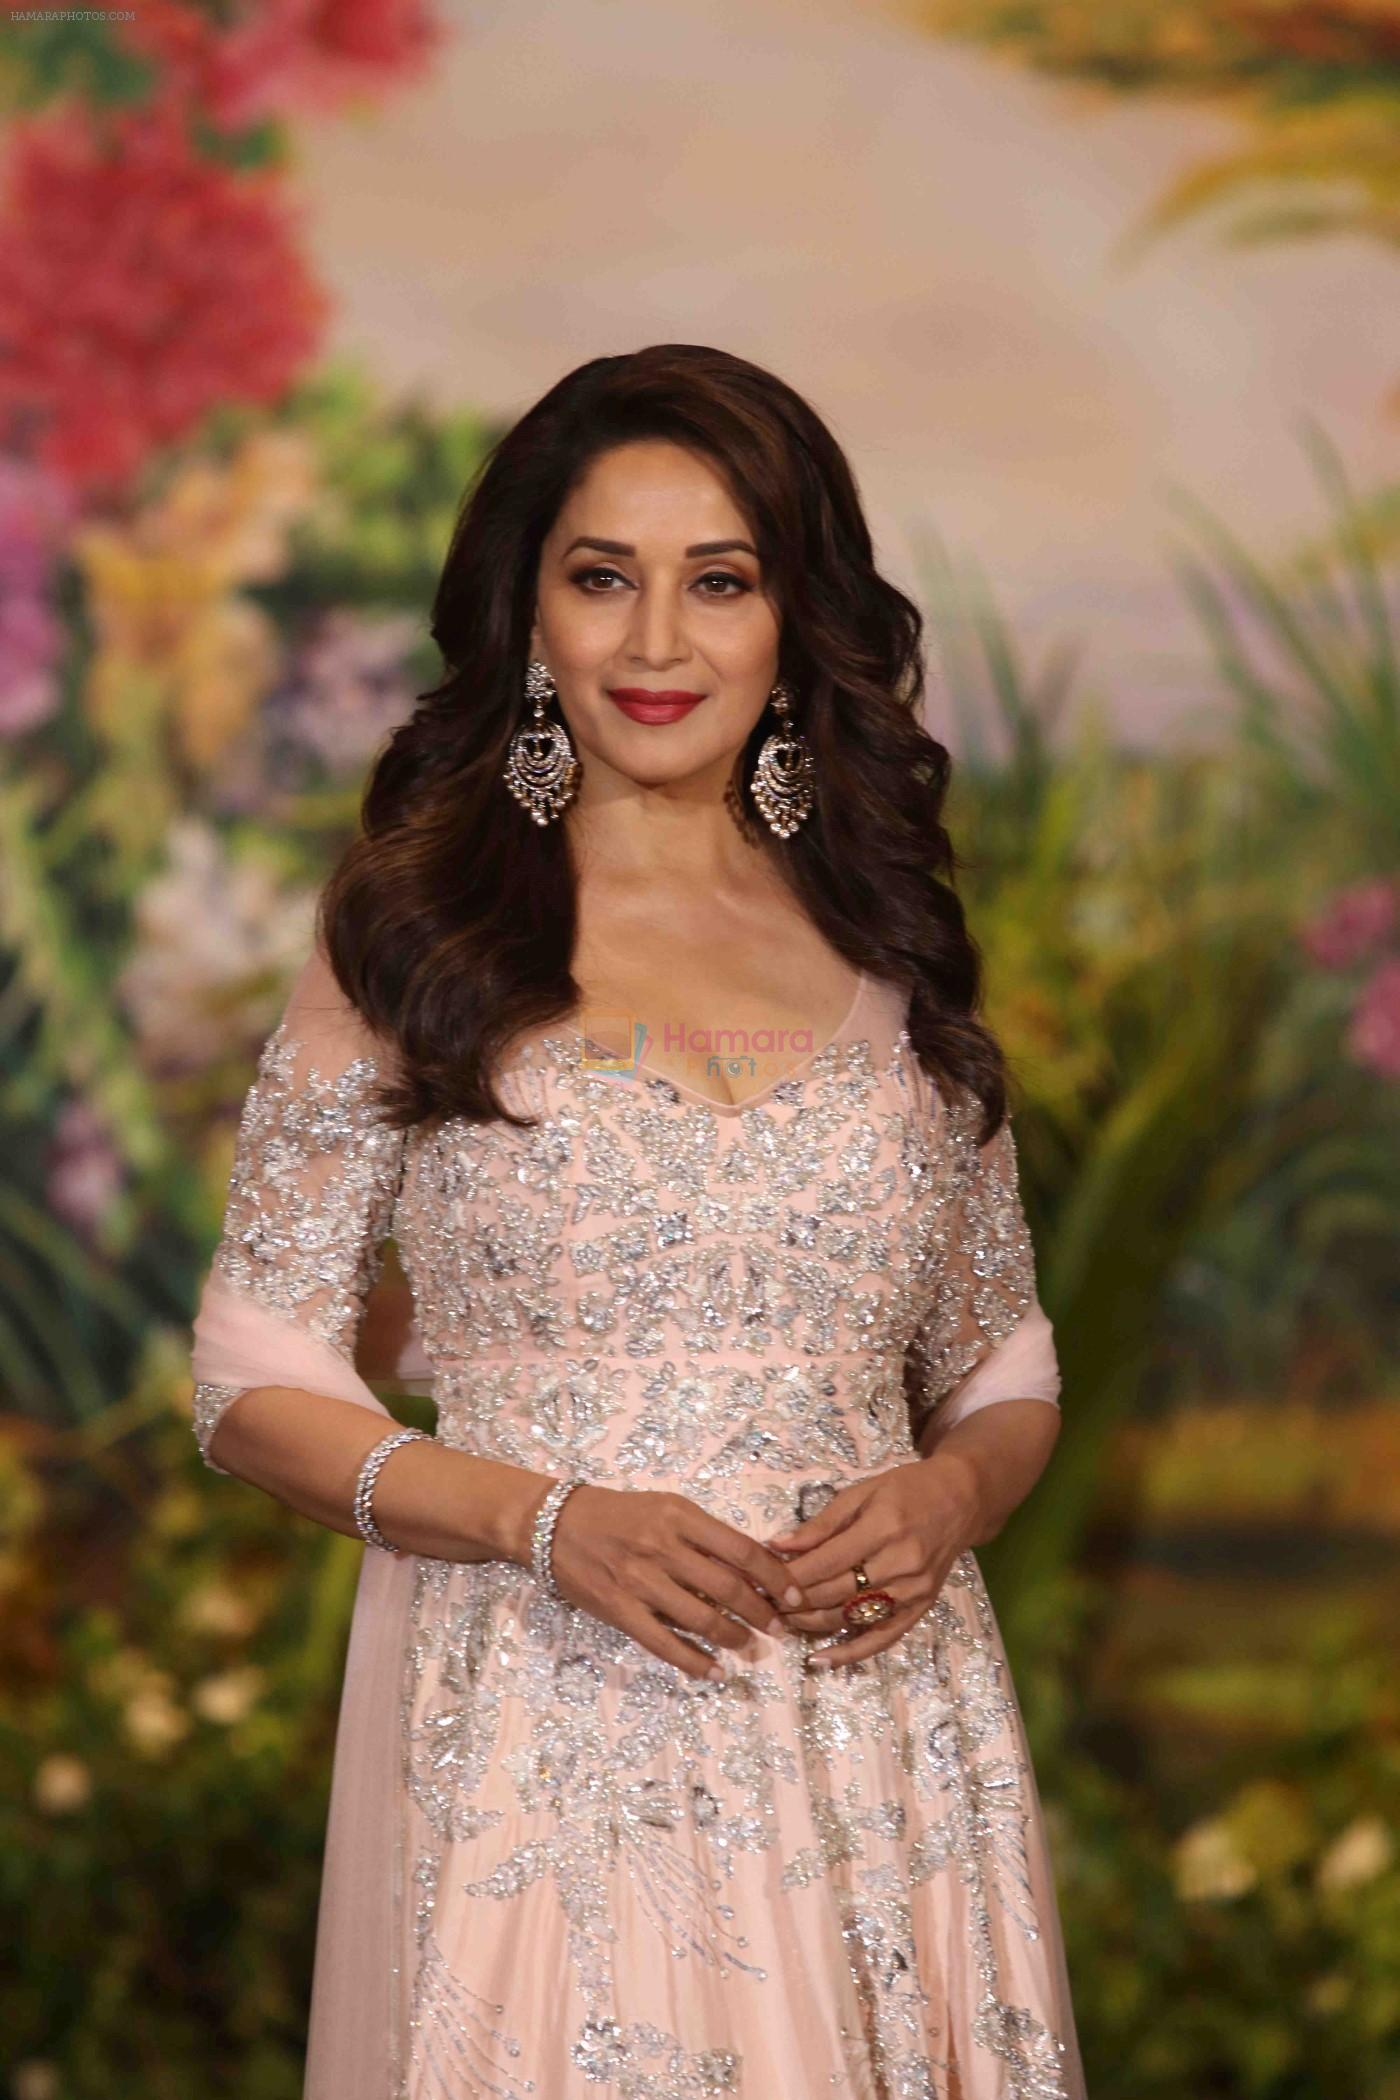 Madhuri Dixit, Lok Sabha elections, Bollywood actress, Bharatiya Janata Party, BJP, Entertainment news, Bollywood news, Politics news